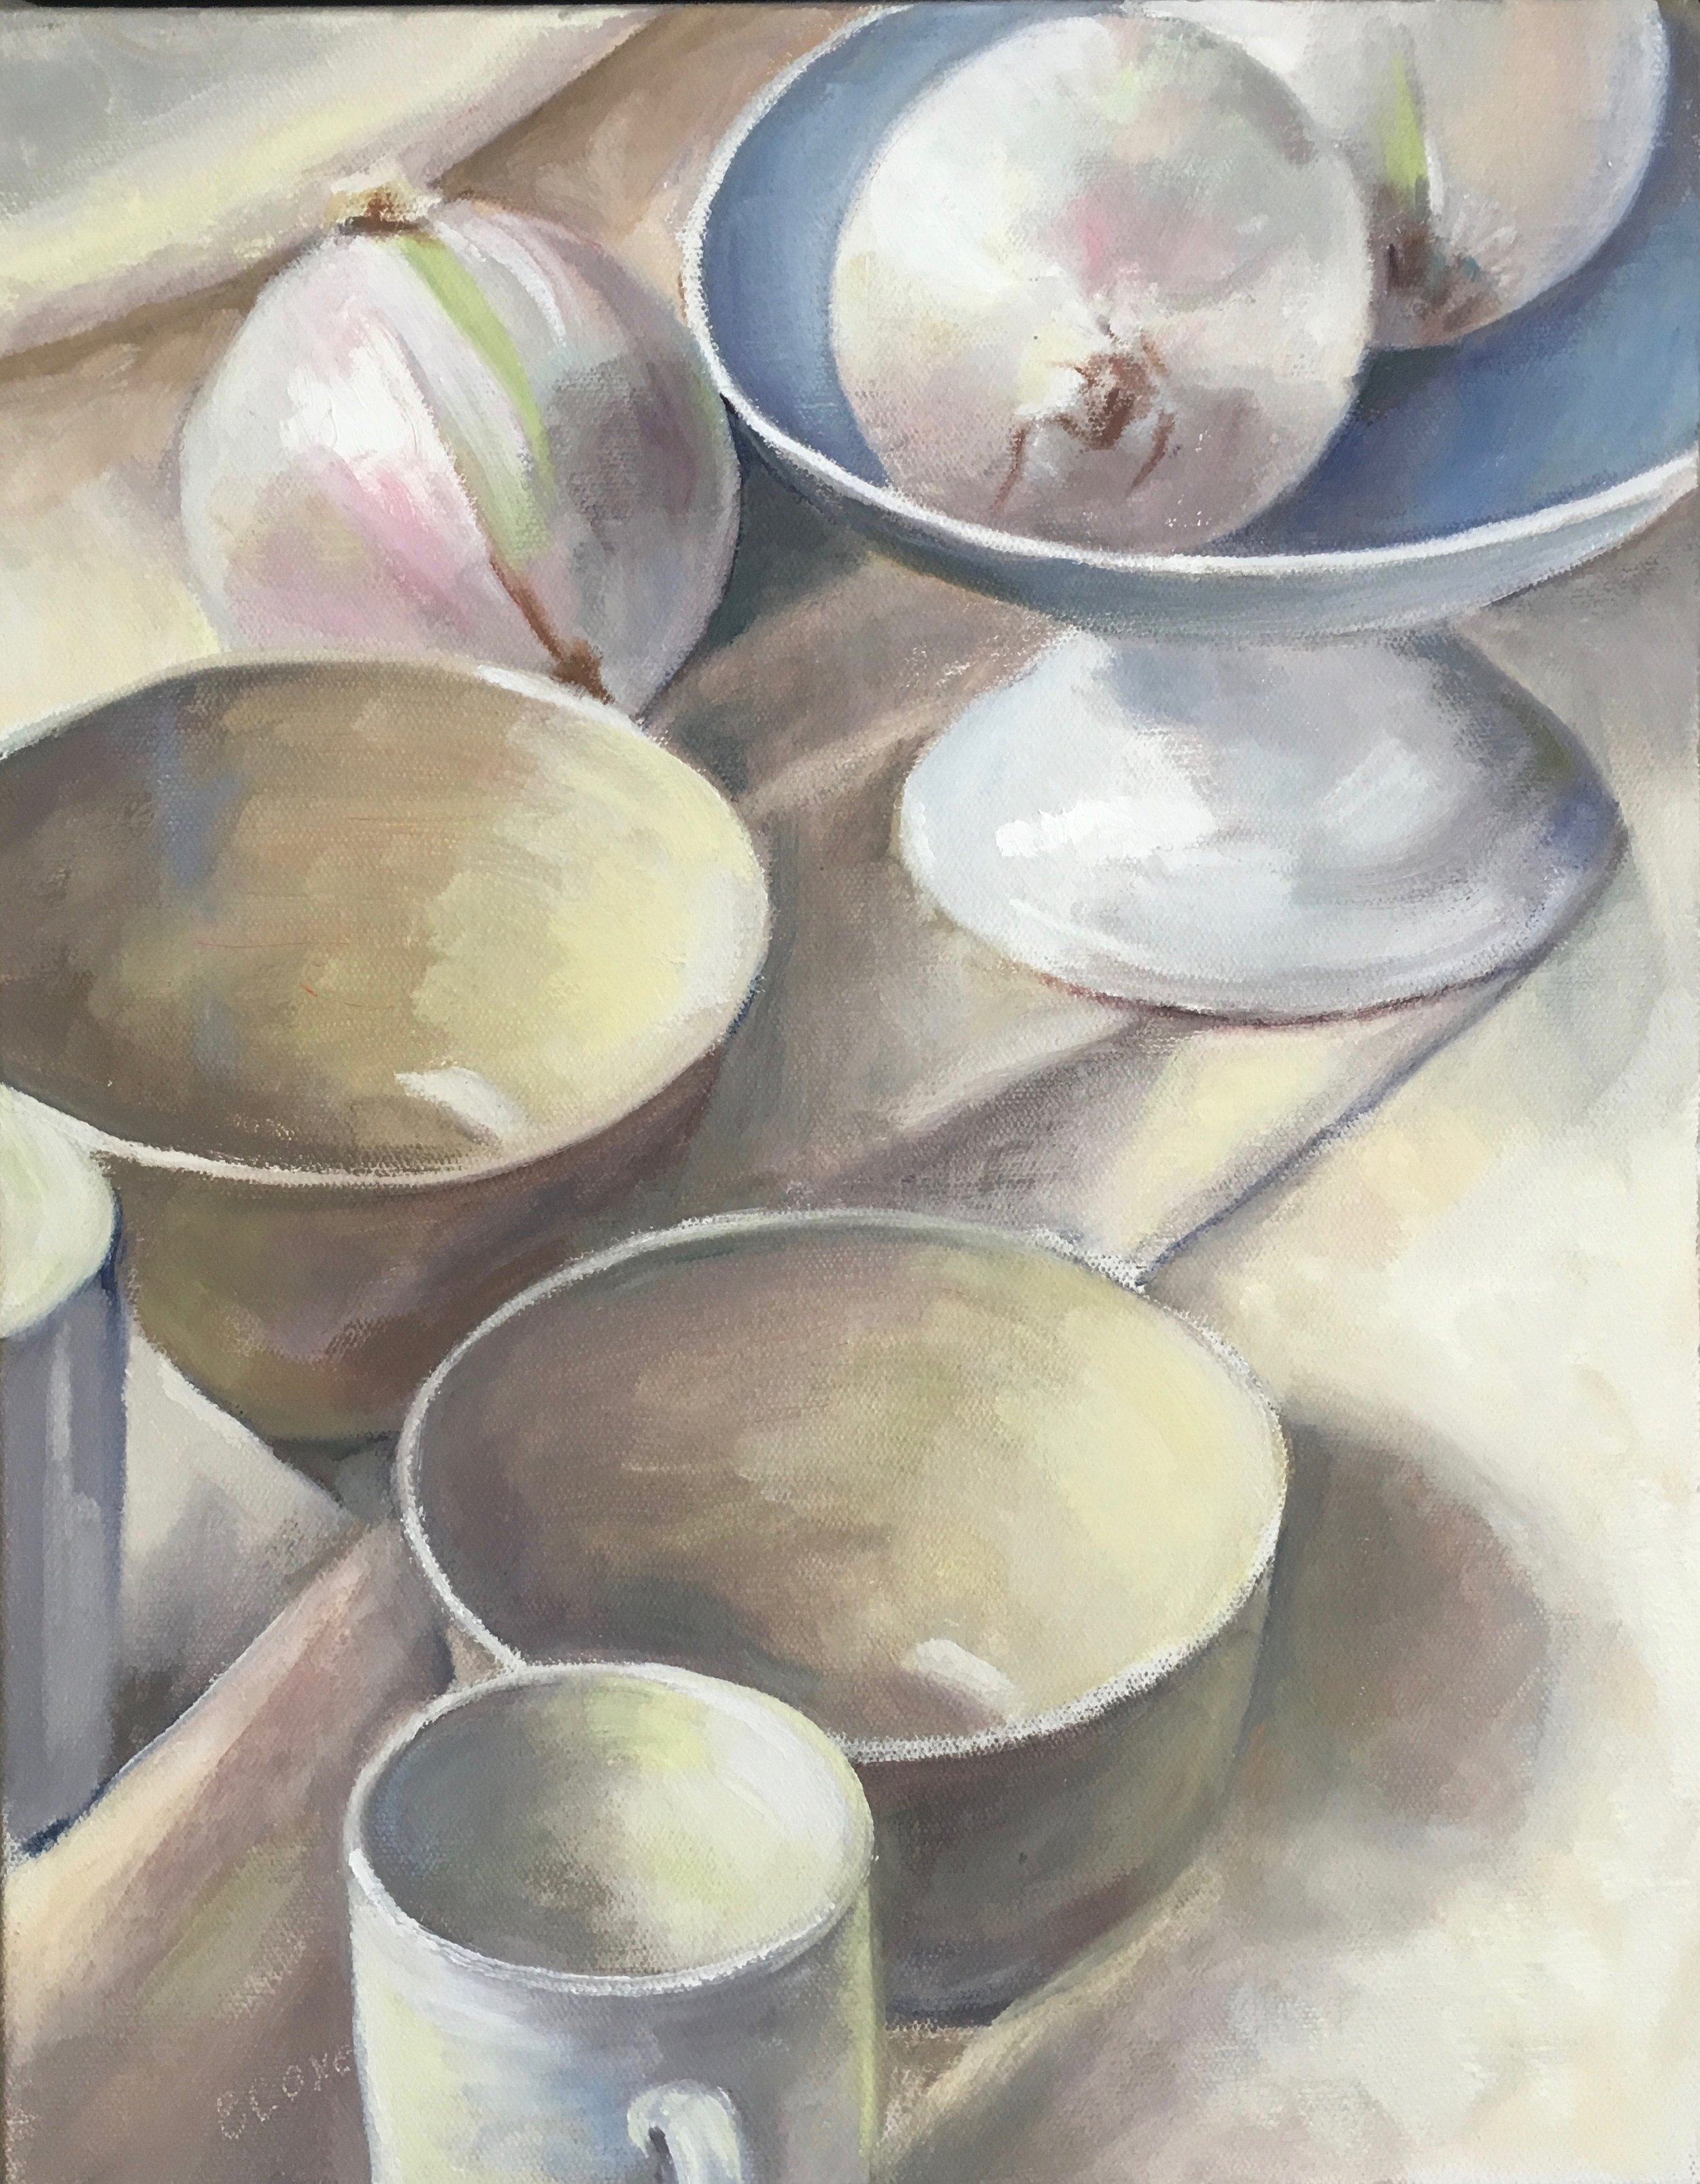 Three Onions and White Dishes